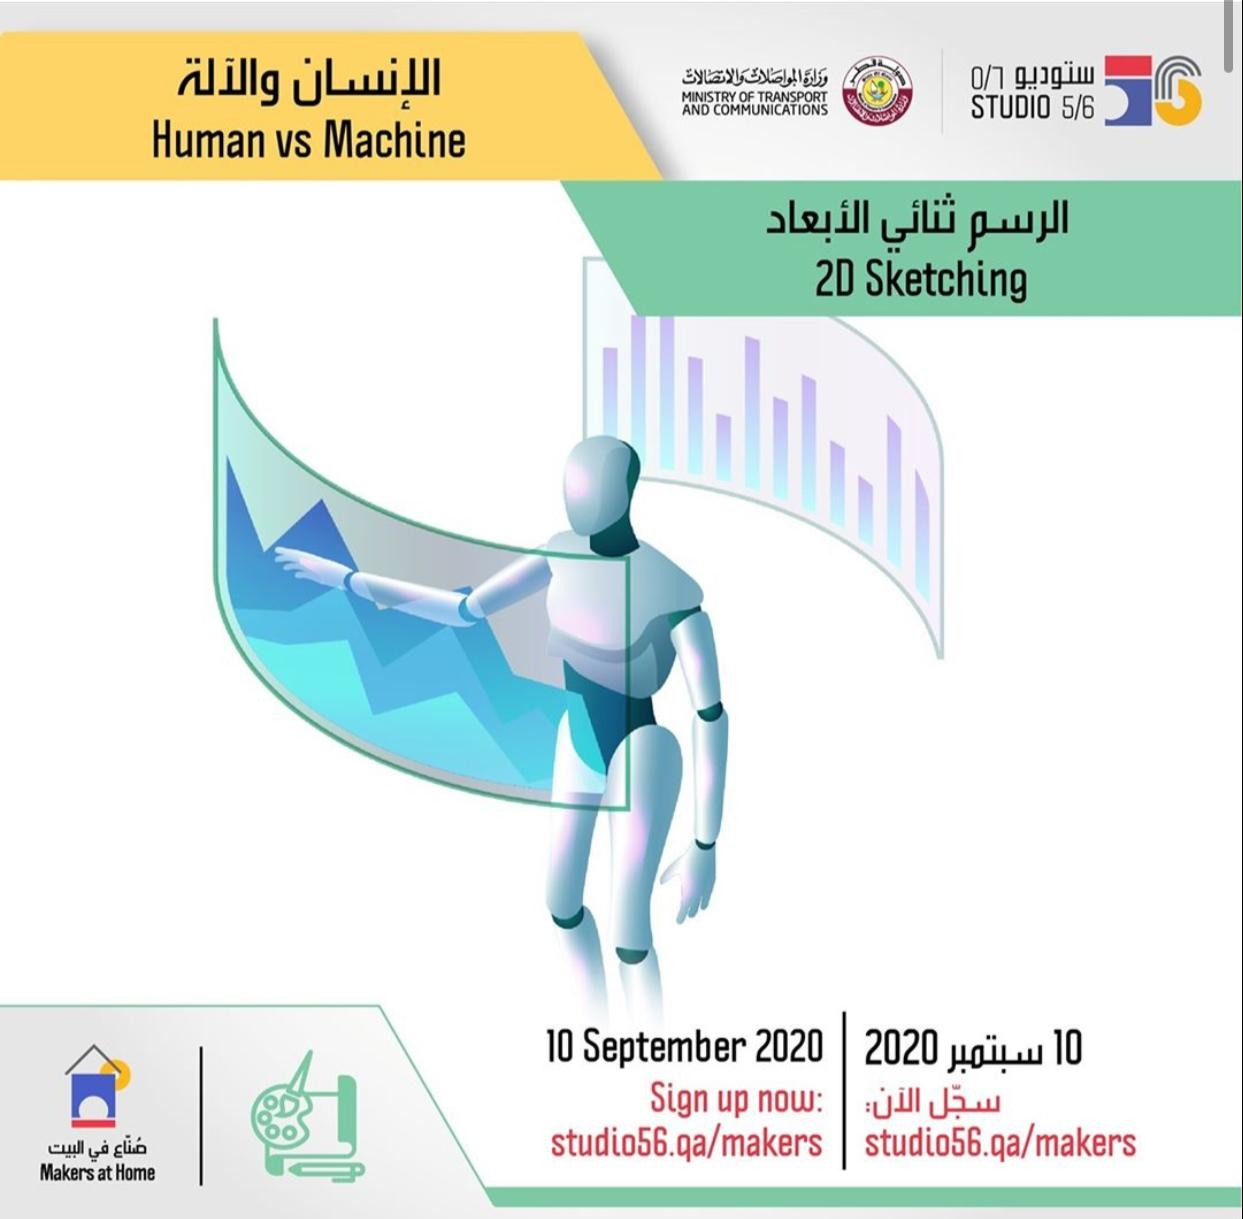 Doha Where & When .. Recreational and educational activities (Sep 10 - 15)